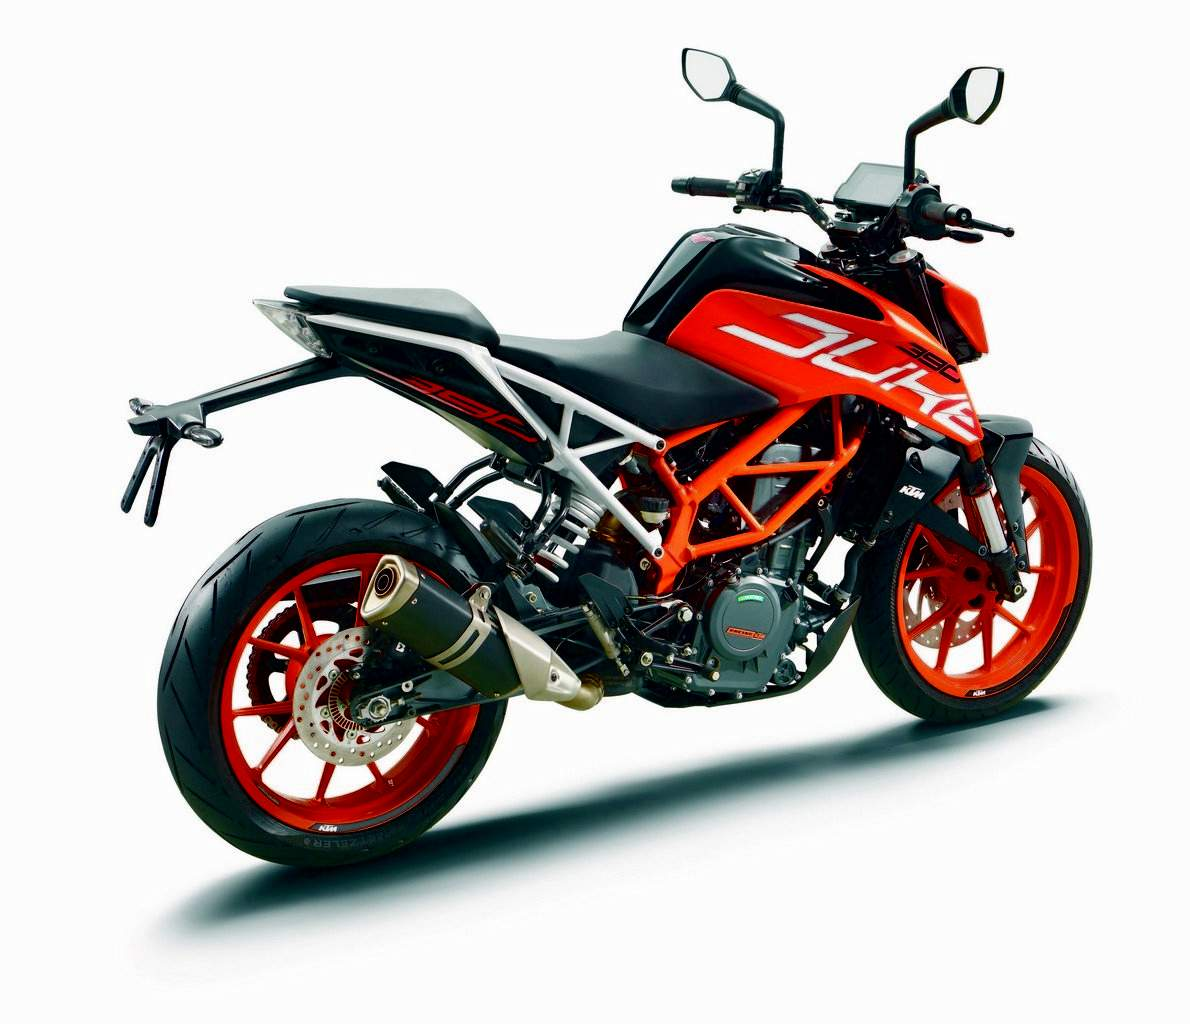 ktm 390 duke specs 2017 2018 autoevolution. Black Bedroom Furniture Sets. Home Design Ideas